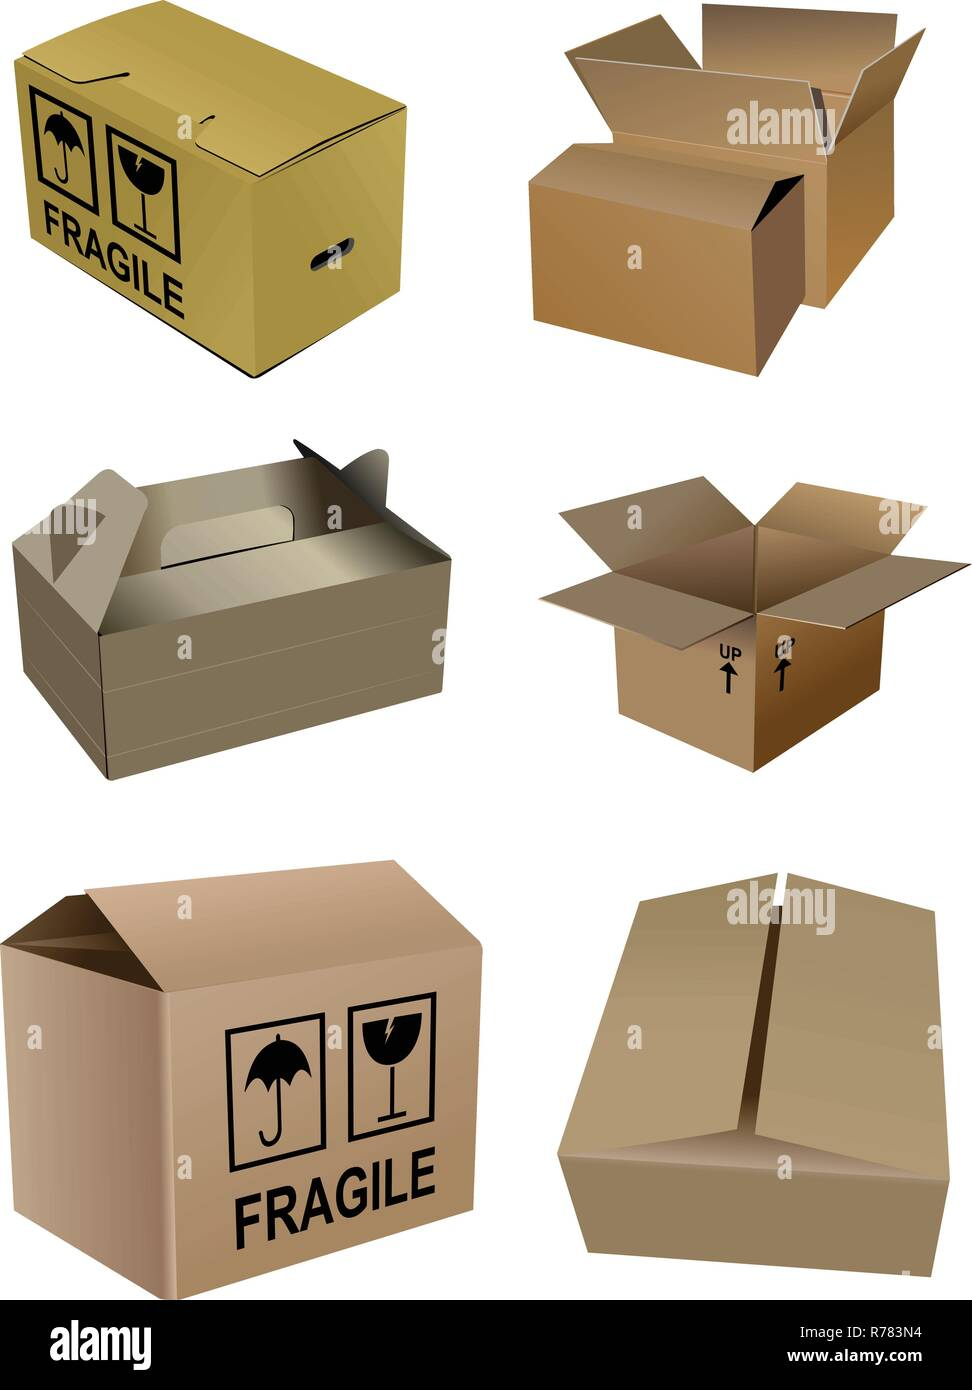 Set of carton boxes isolated over a white background - Stock Vector